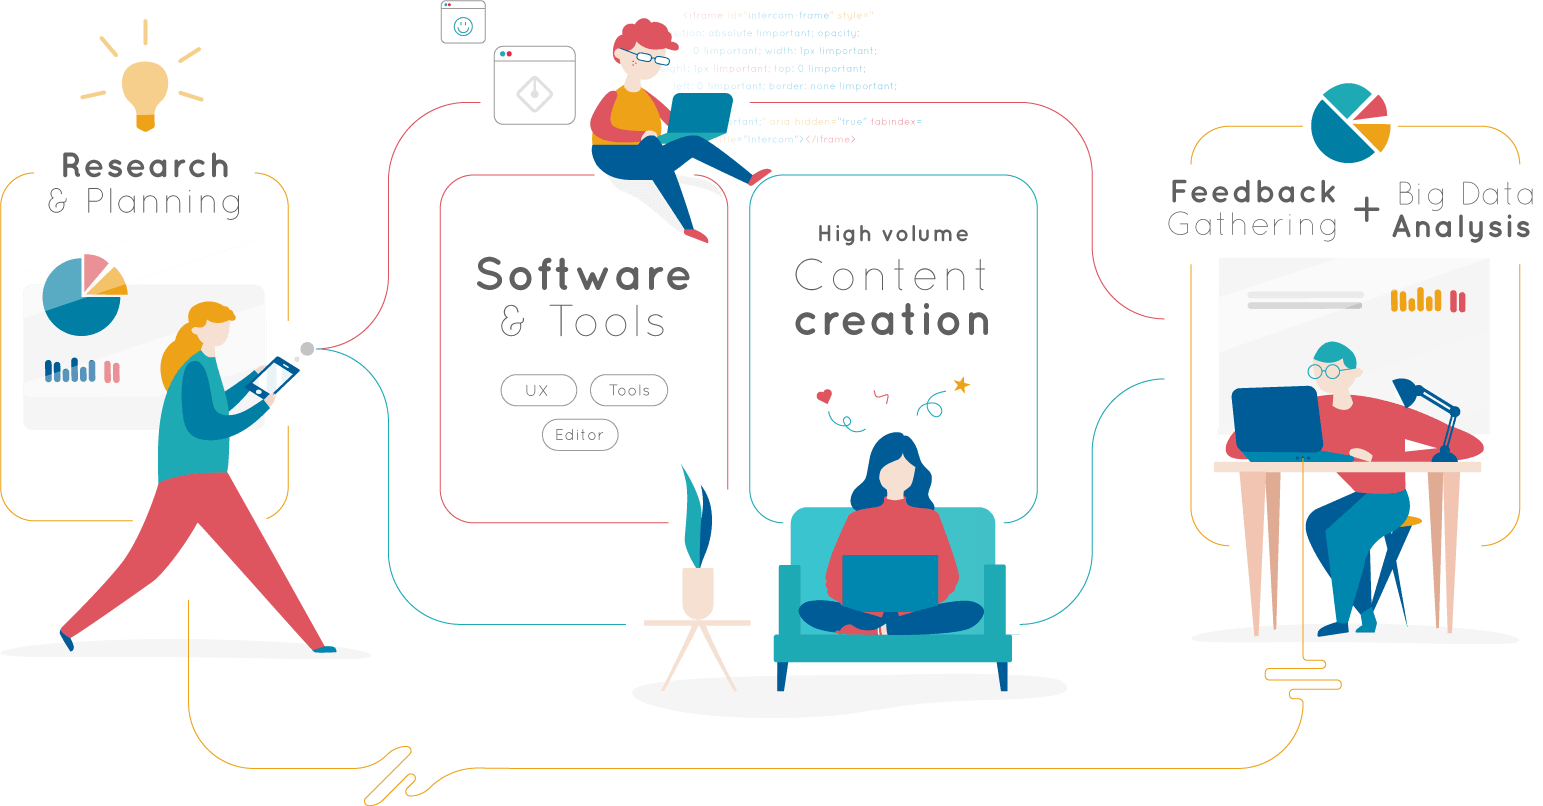 How we do it diagram including: research, software, content creation and analysis